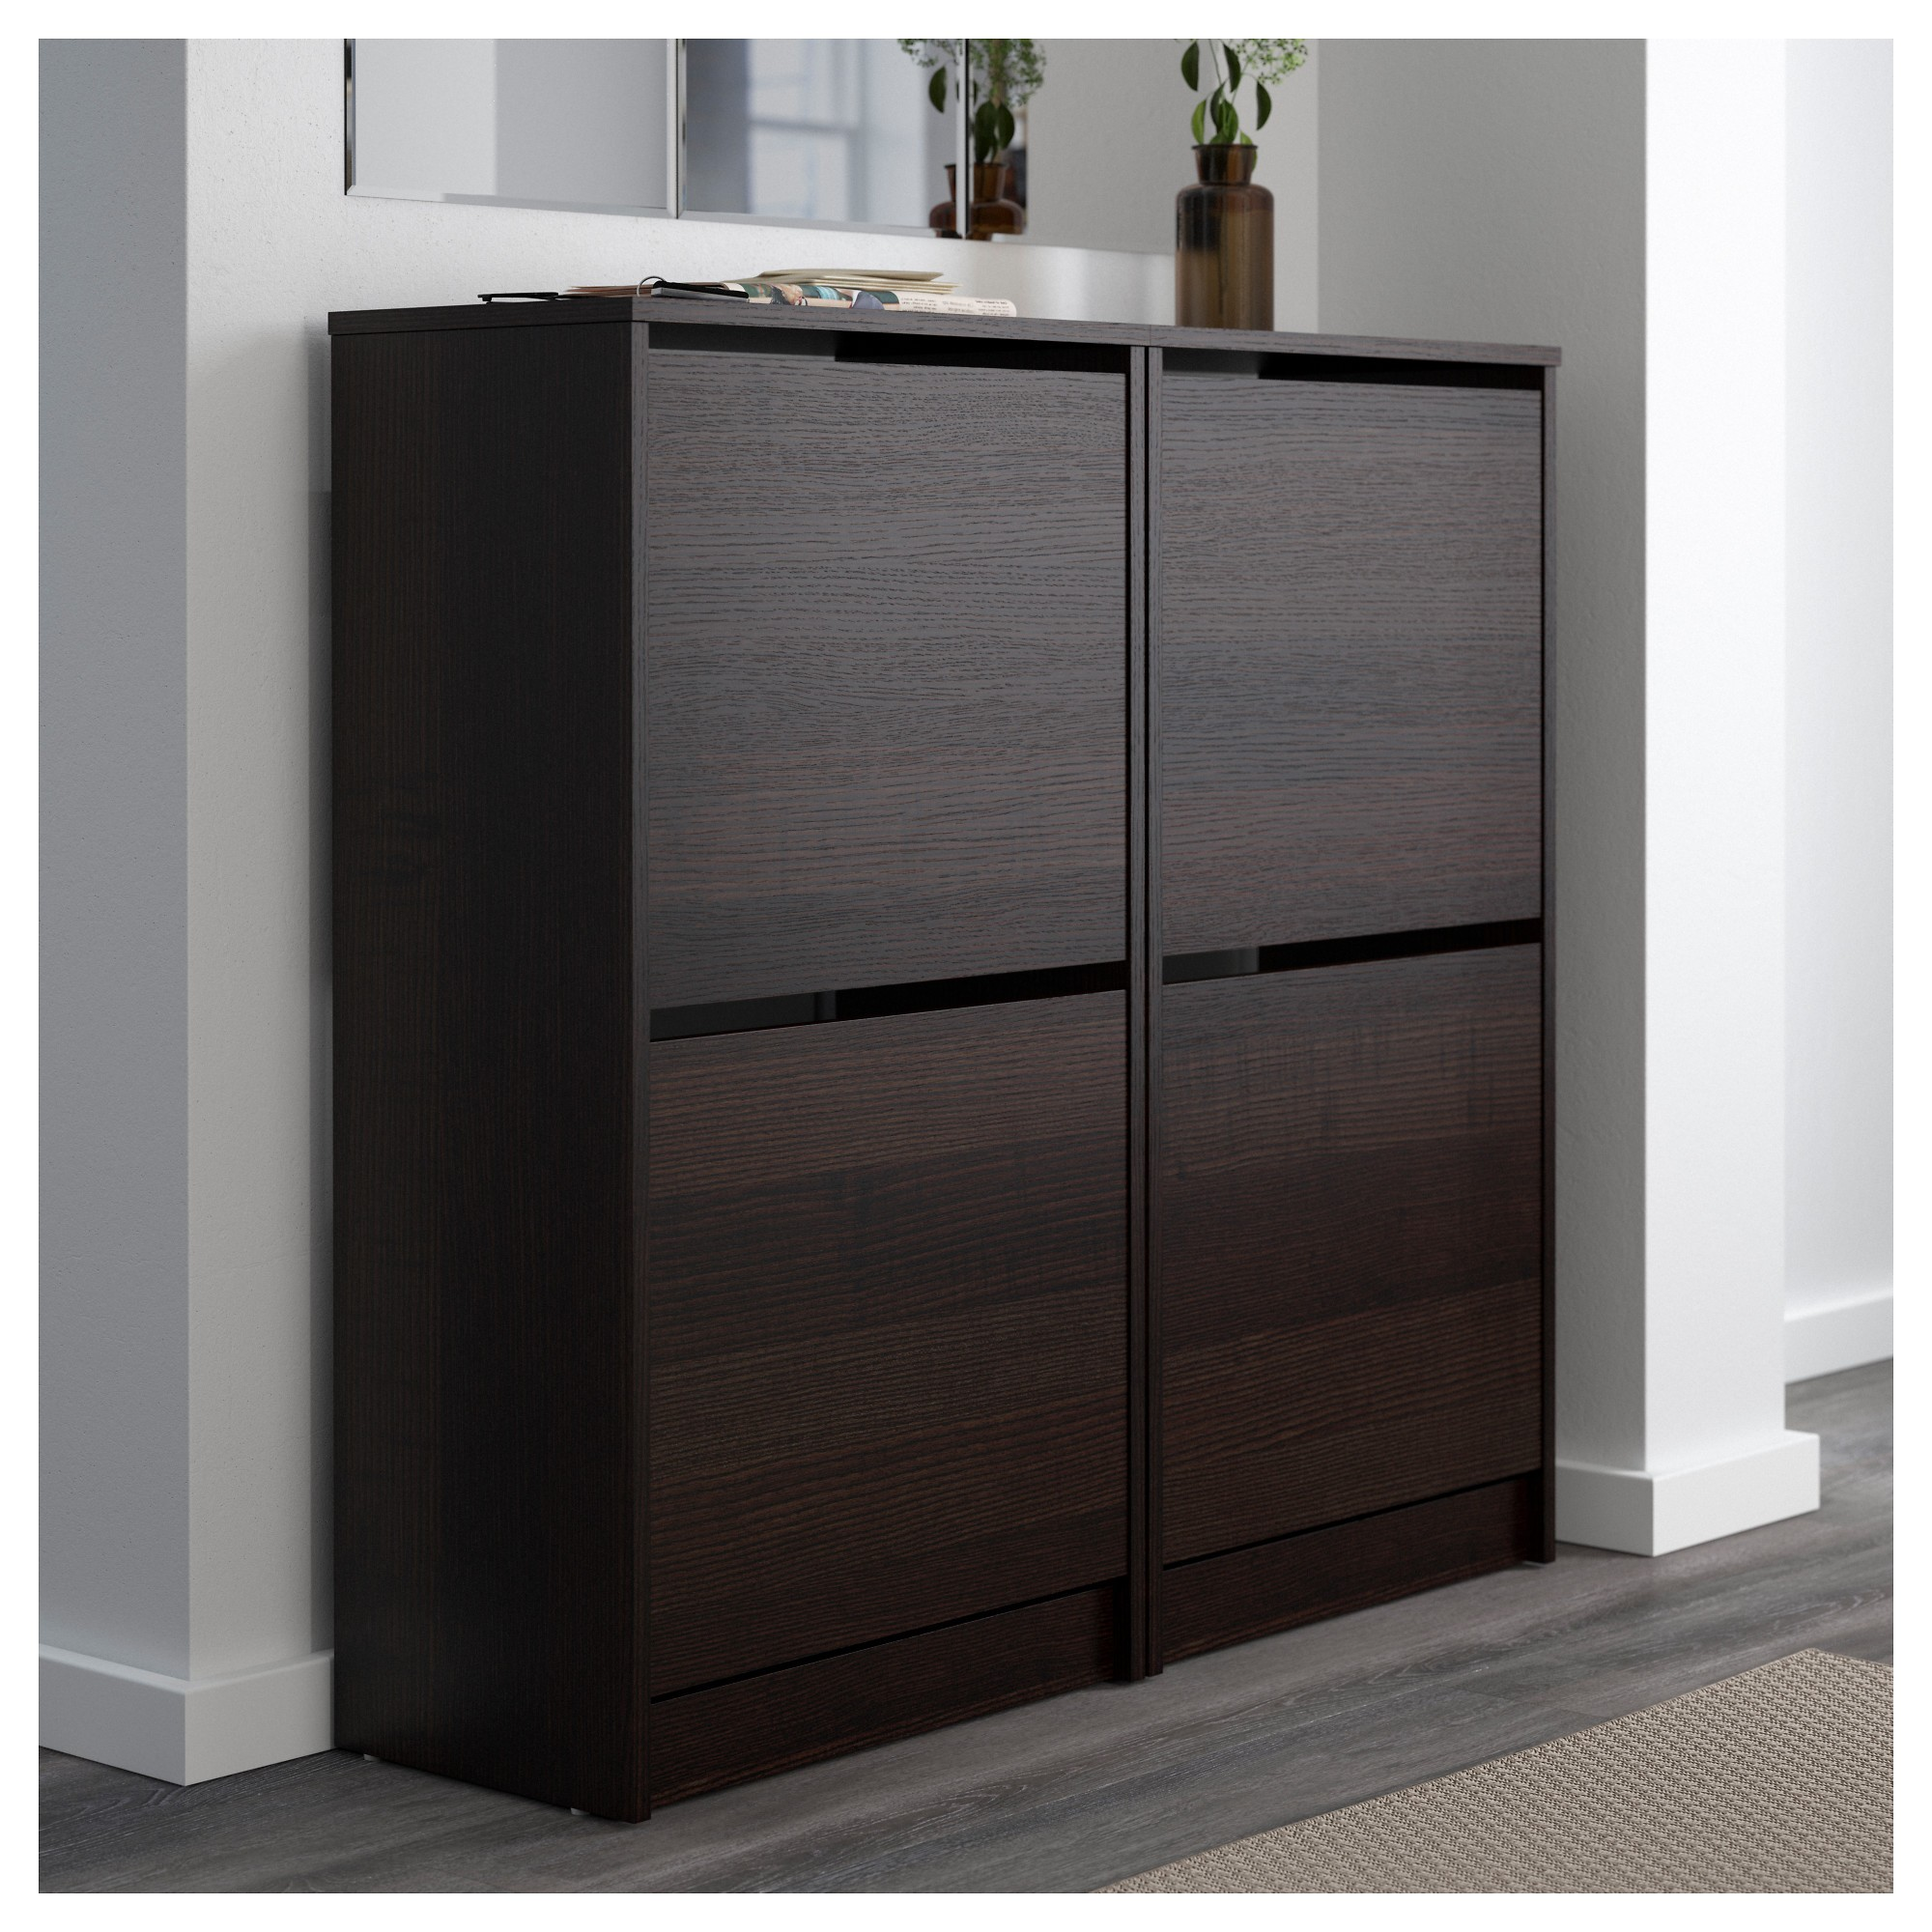 ikea meuble chaussures bissa armoire id es de d coration de maison d6lev7adbp. Black Bedroom Furniture Sets. Home Design Ideas